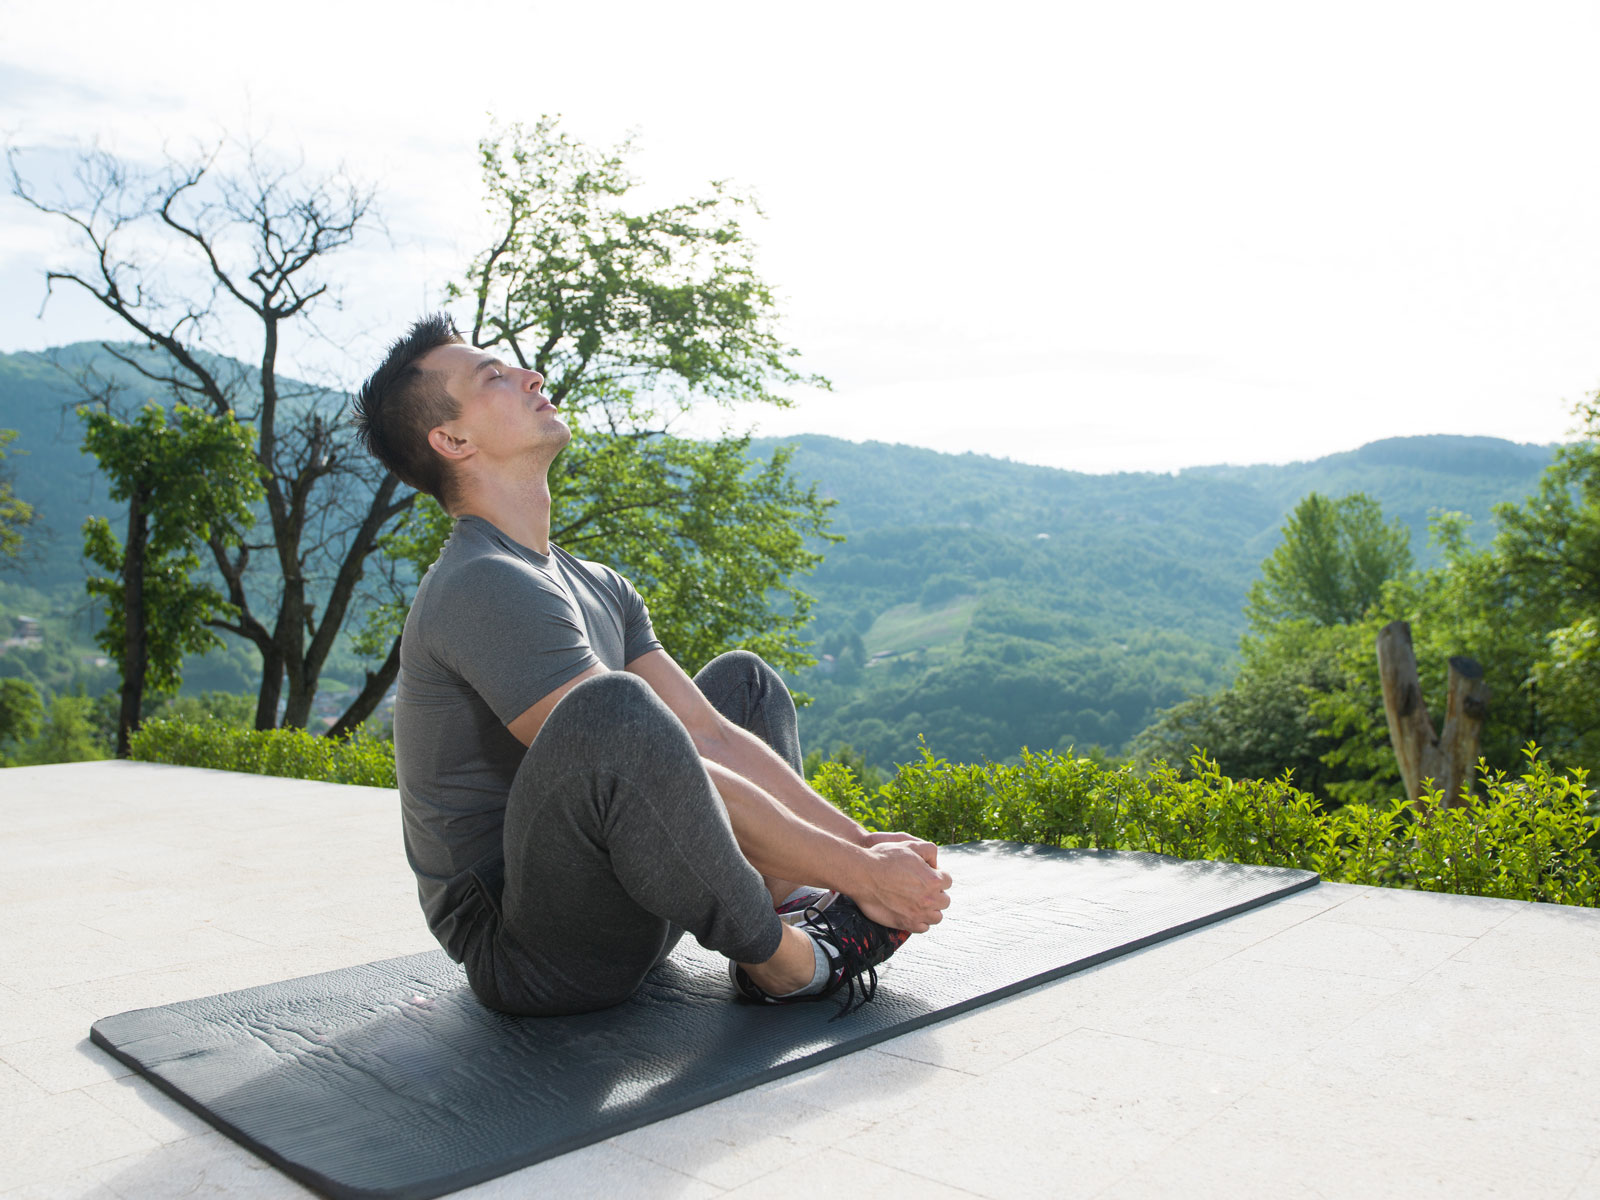 Man Doing Yoga Outdoor | 17 Most Popular Types Of Yoga: A Simple Breakdown